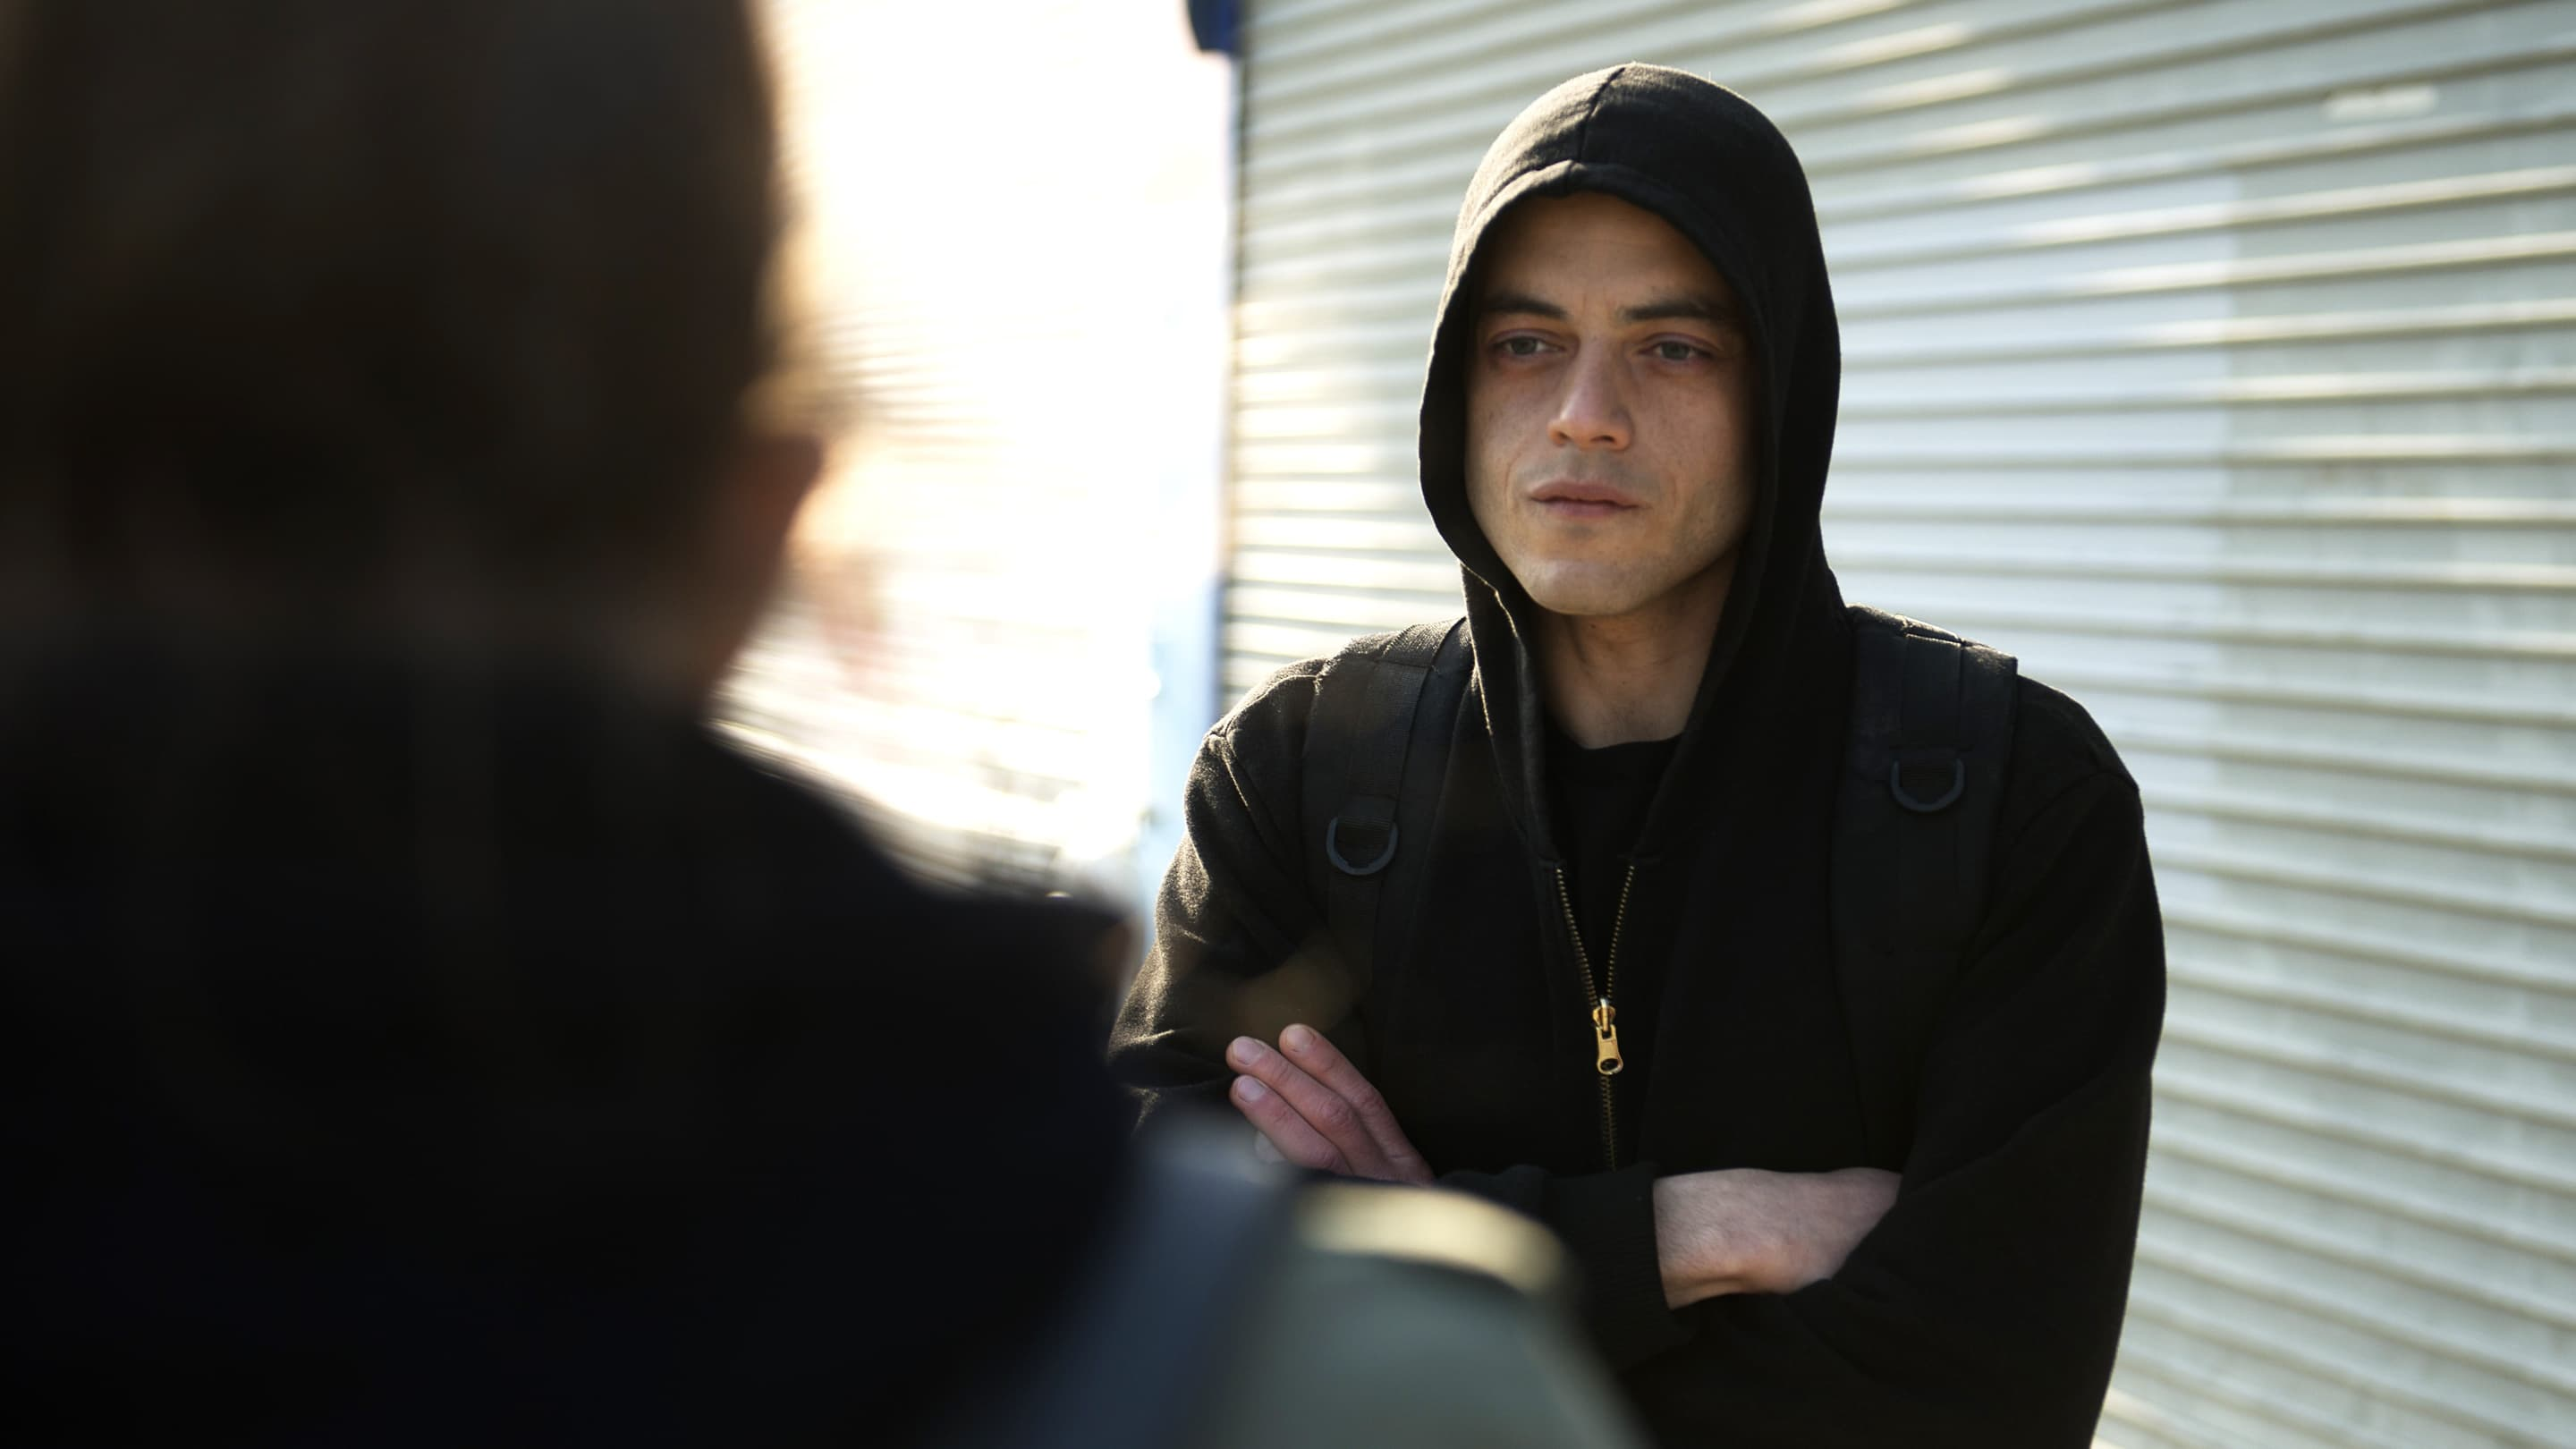 Mr. Robot Season 4 has been given the green light by USA Network. Follow  new details as they arrive here.